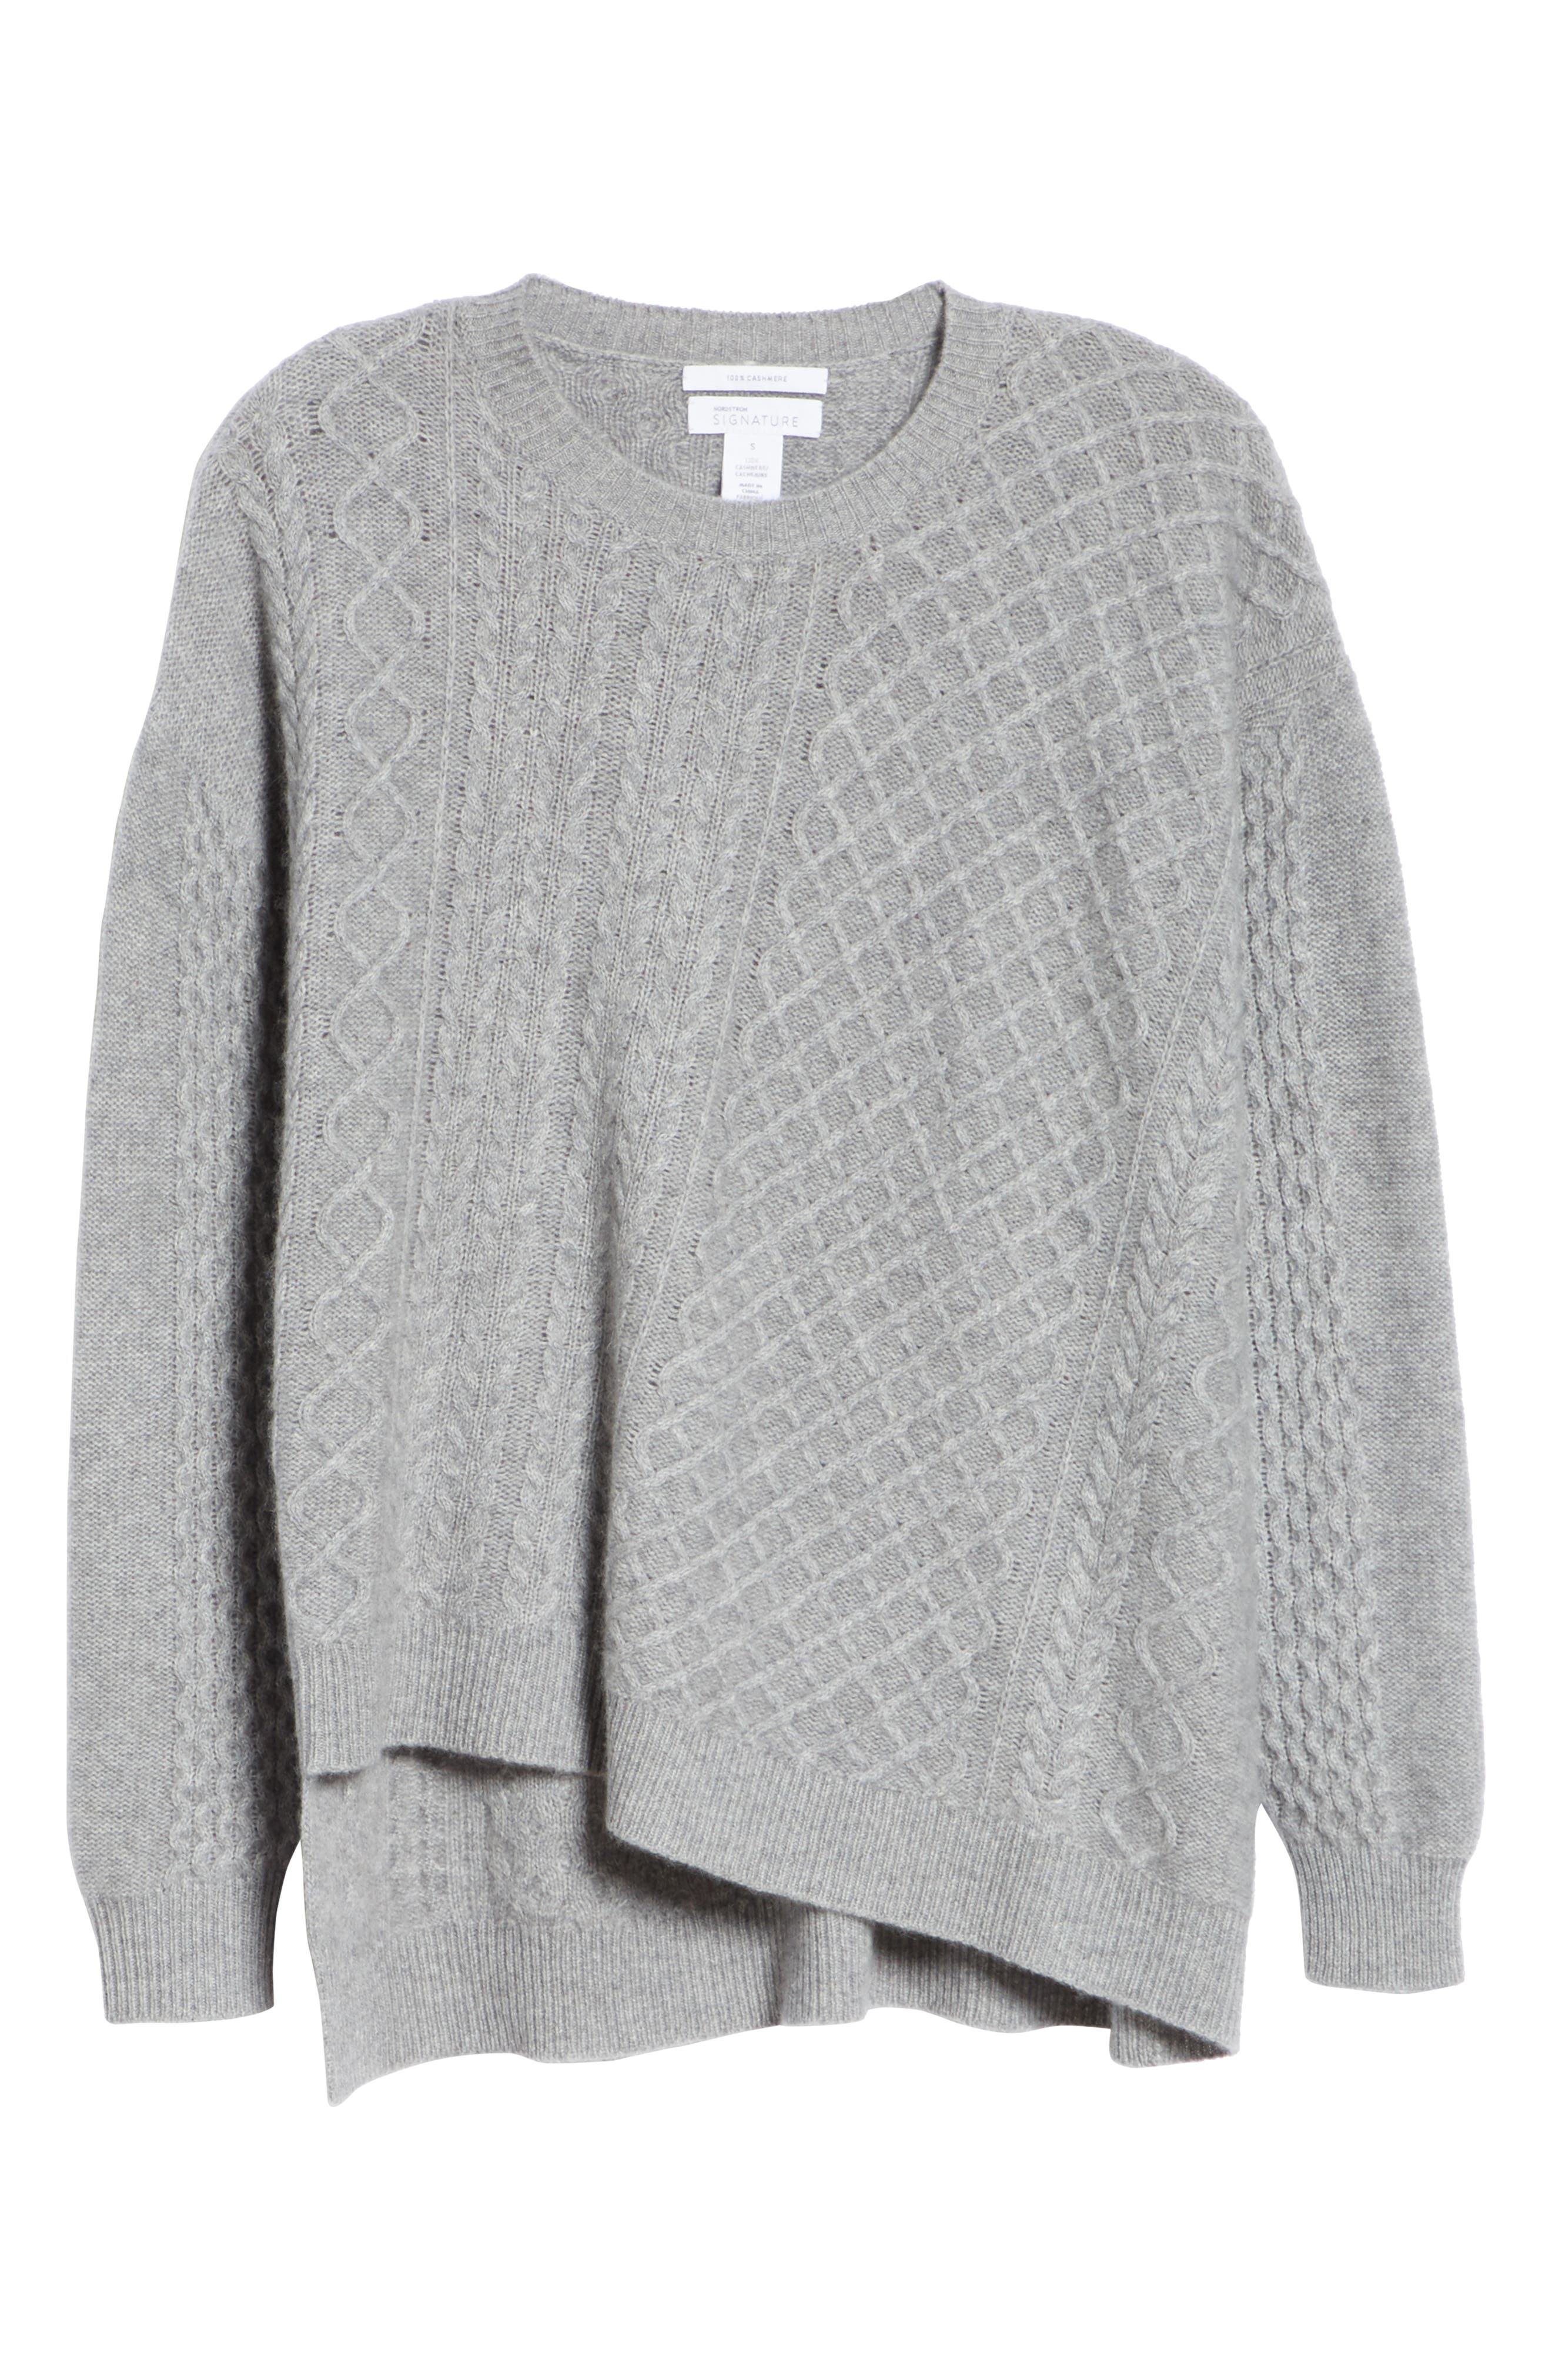 Cable Mix Asymmetrical Cashmere Sweater,                             Alternate thumbnail 6, color,                             GREY FILIGREE HR